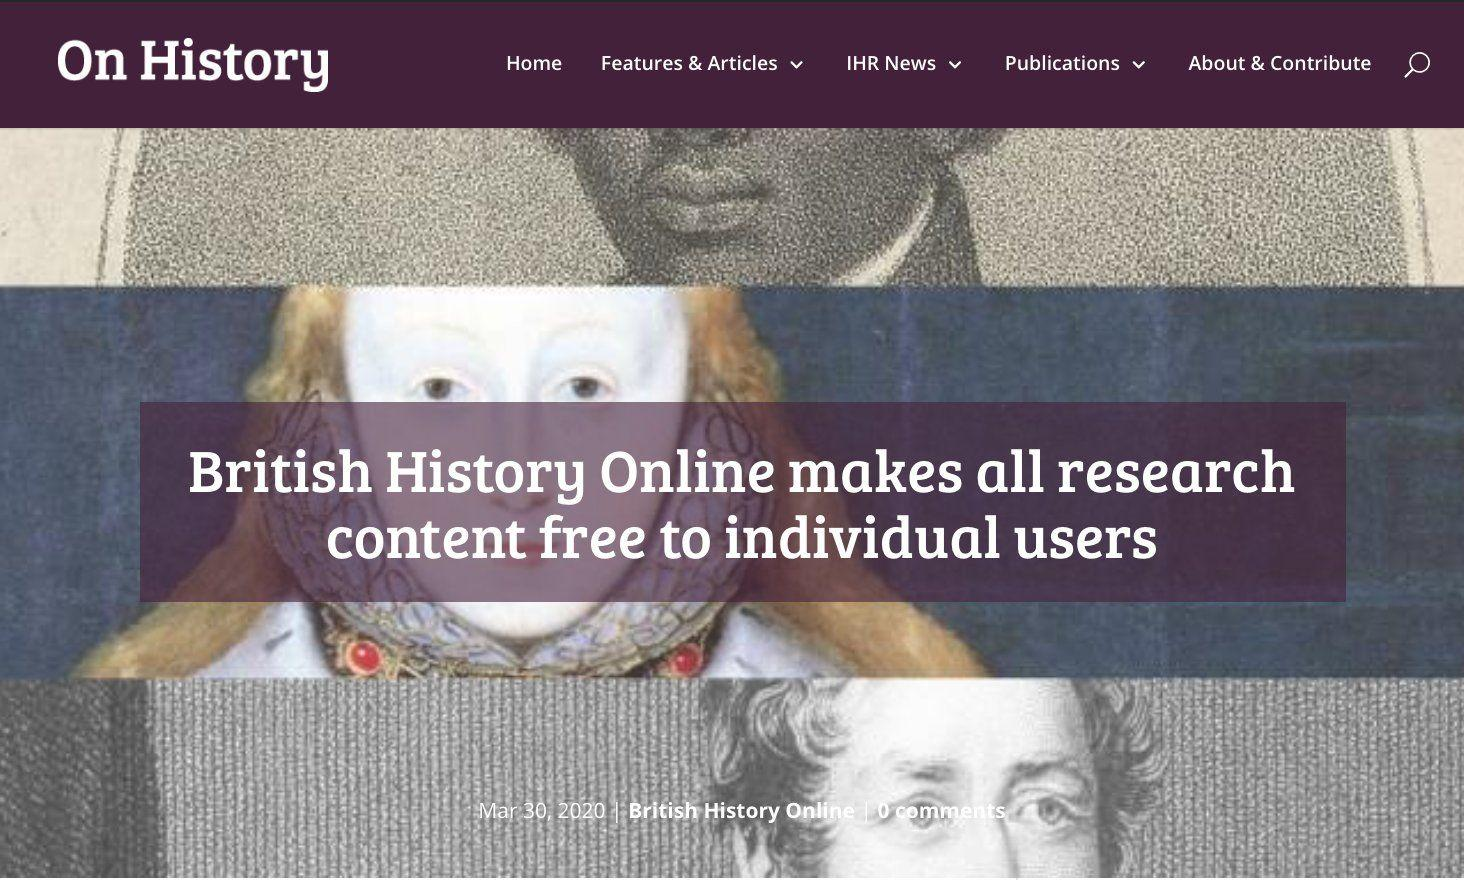 British History Online extends and expands it's free content offer